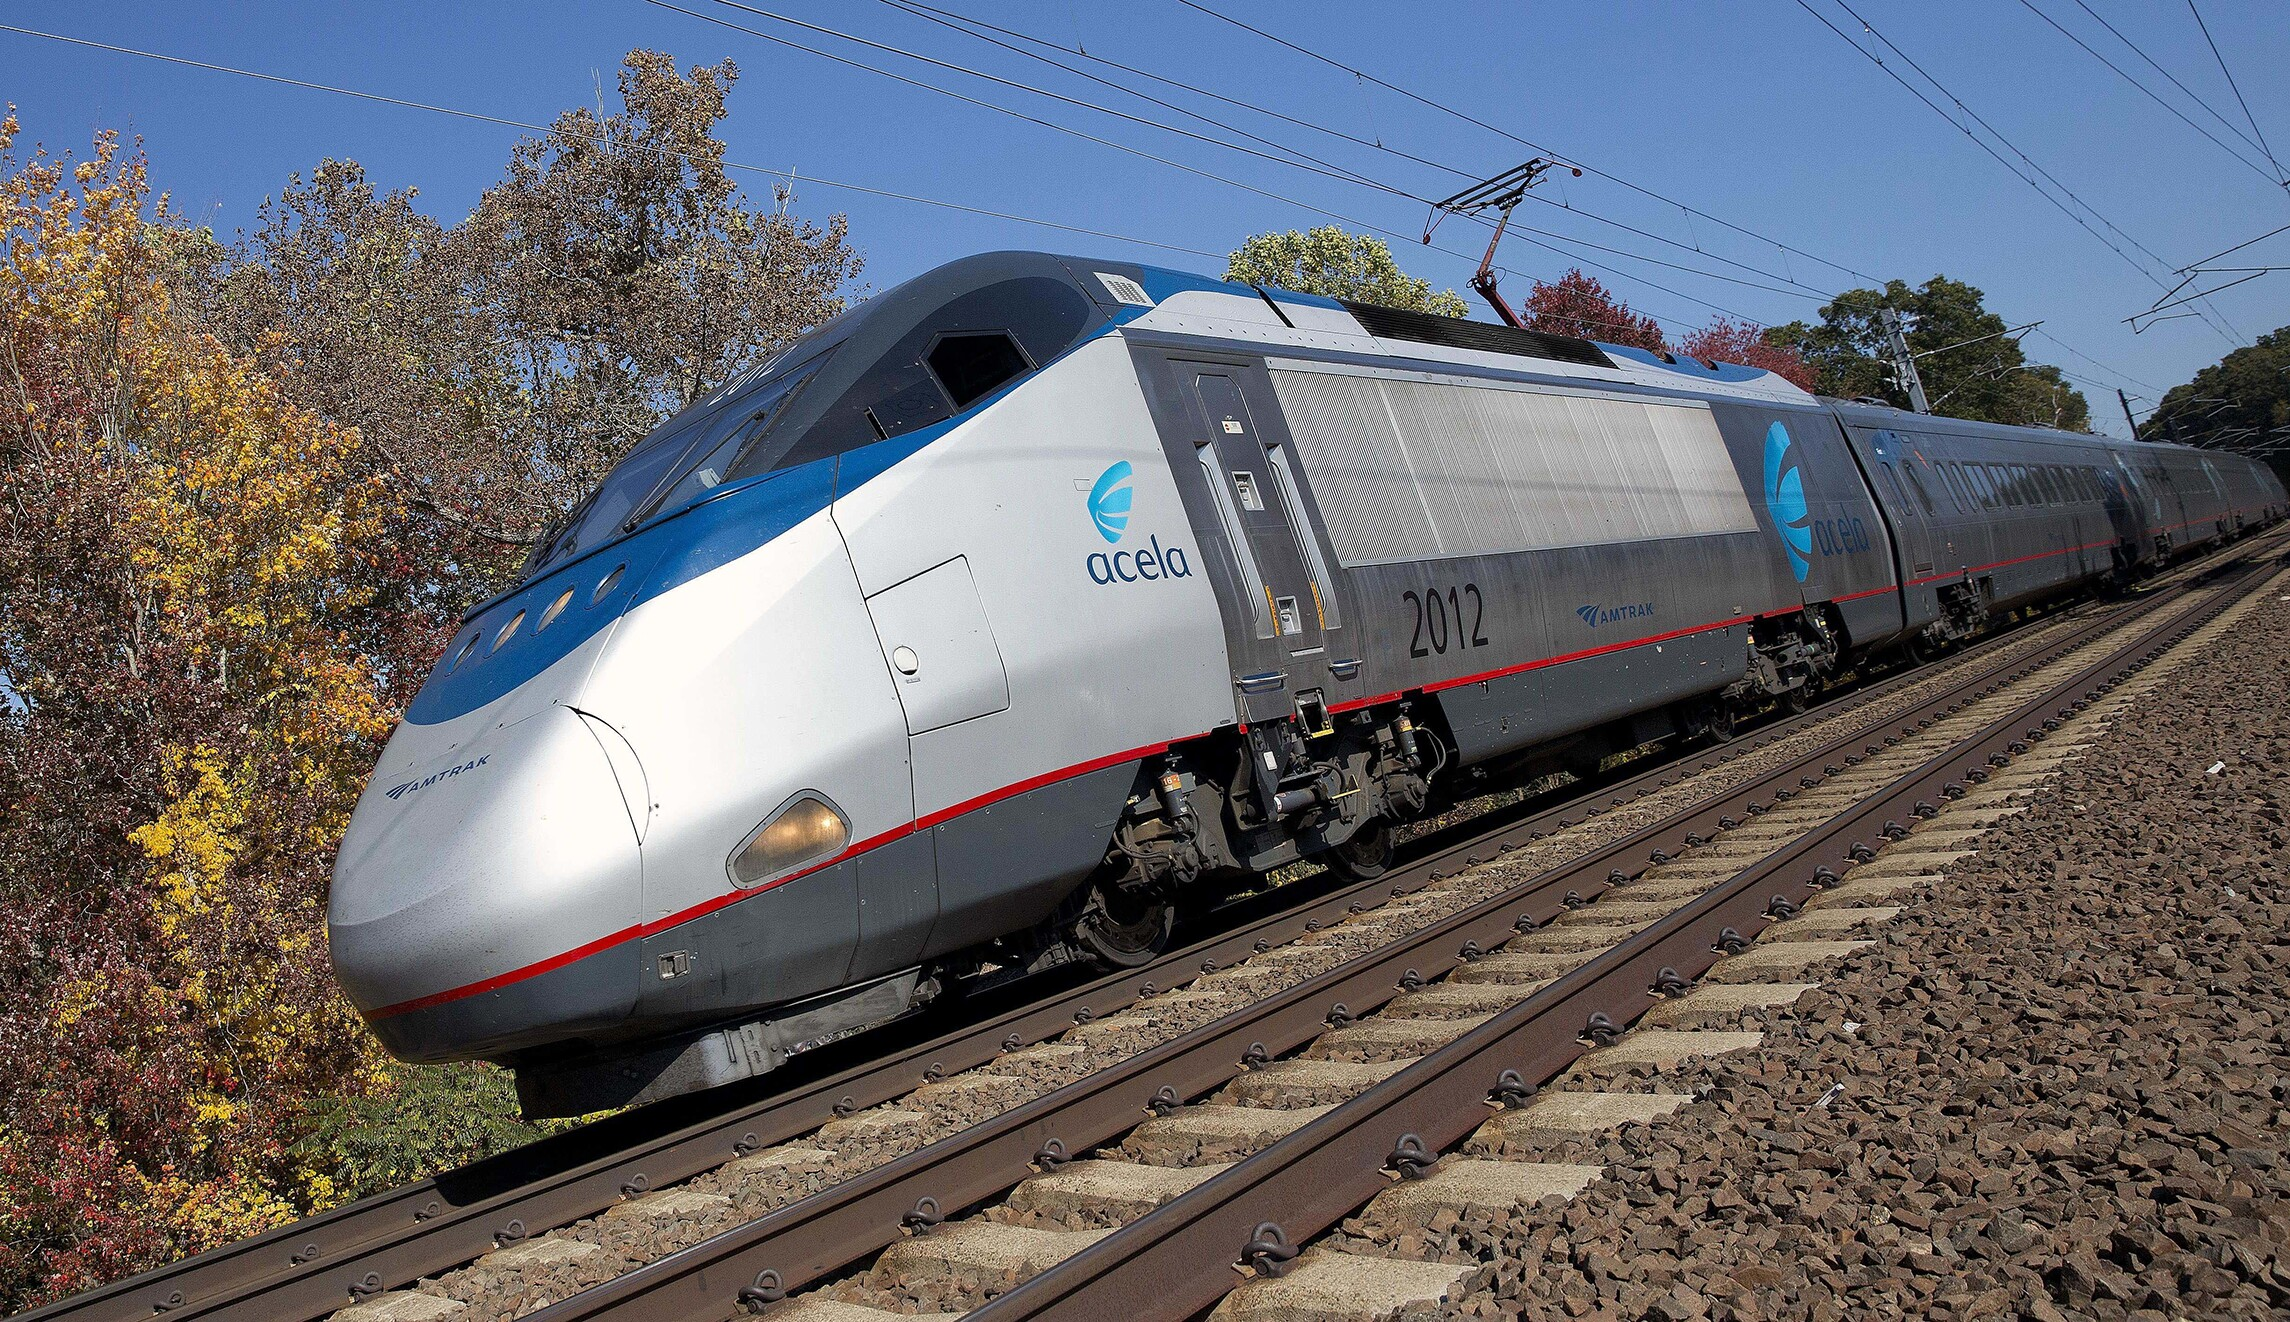 amtrak train from dc to nyc separates while traveling at 125 mph